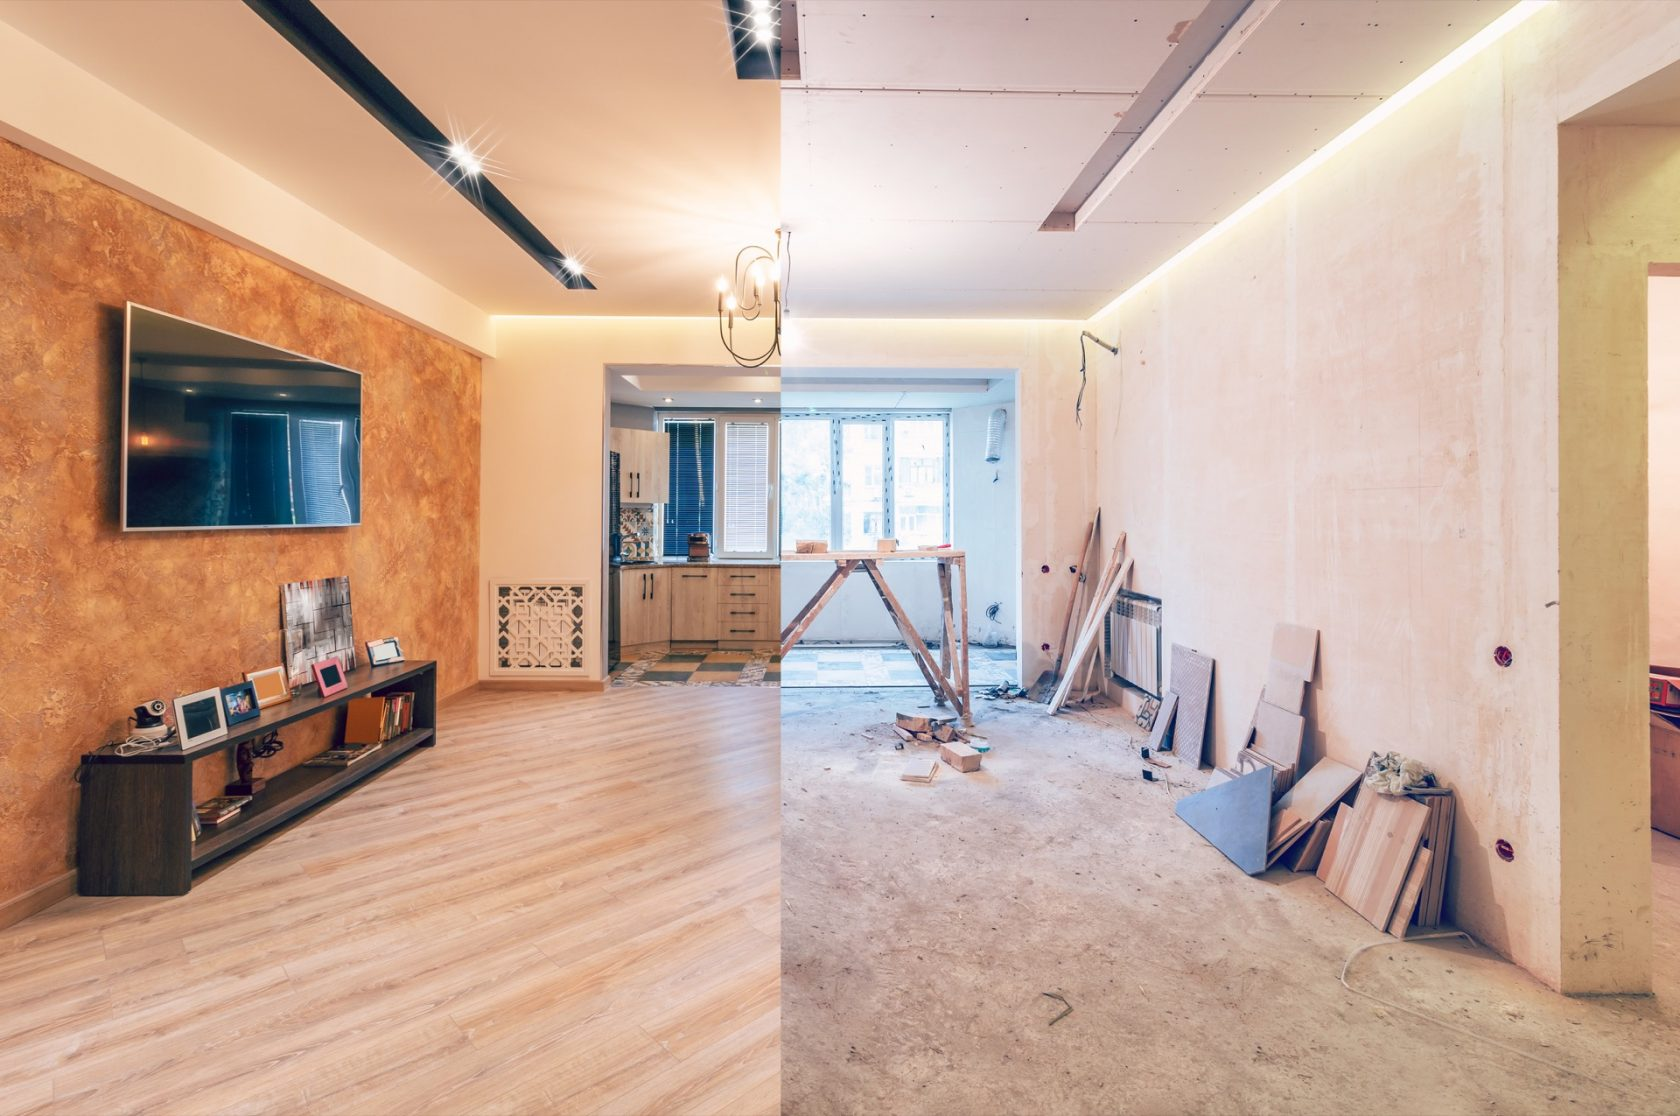 Studio before and after virtual renovation